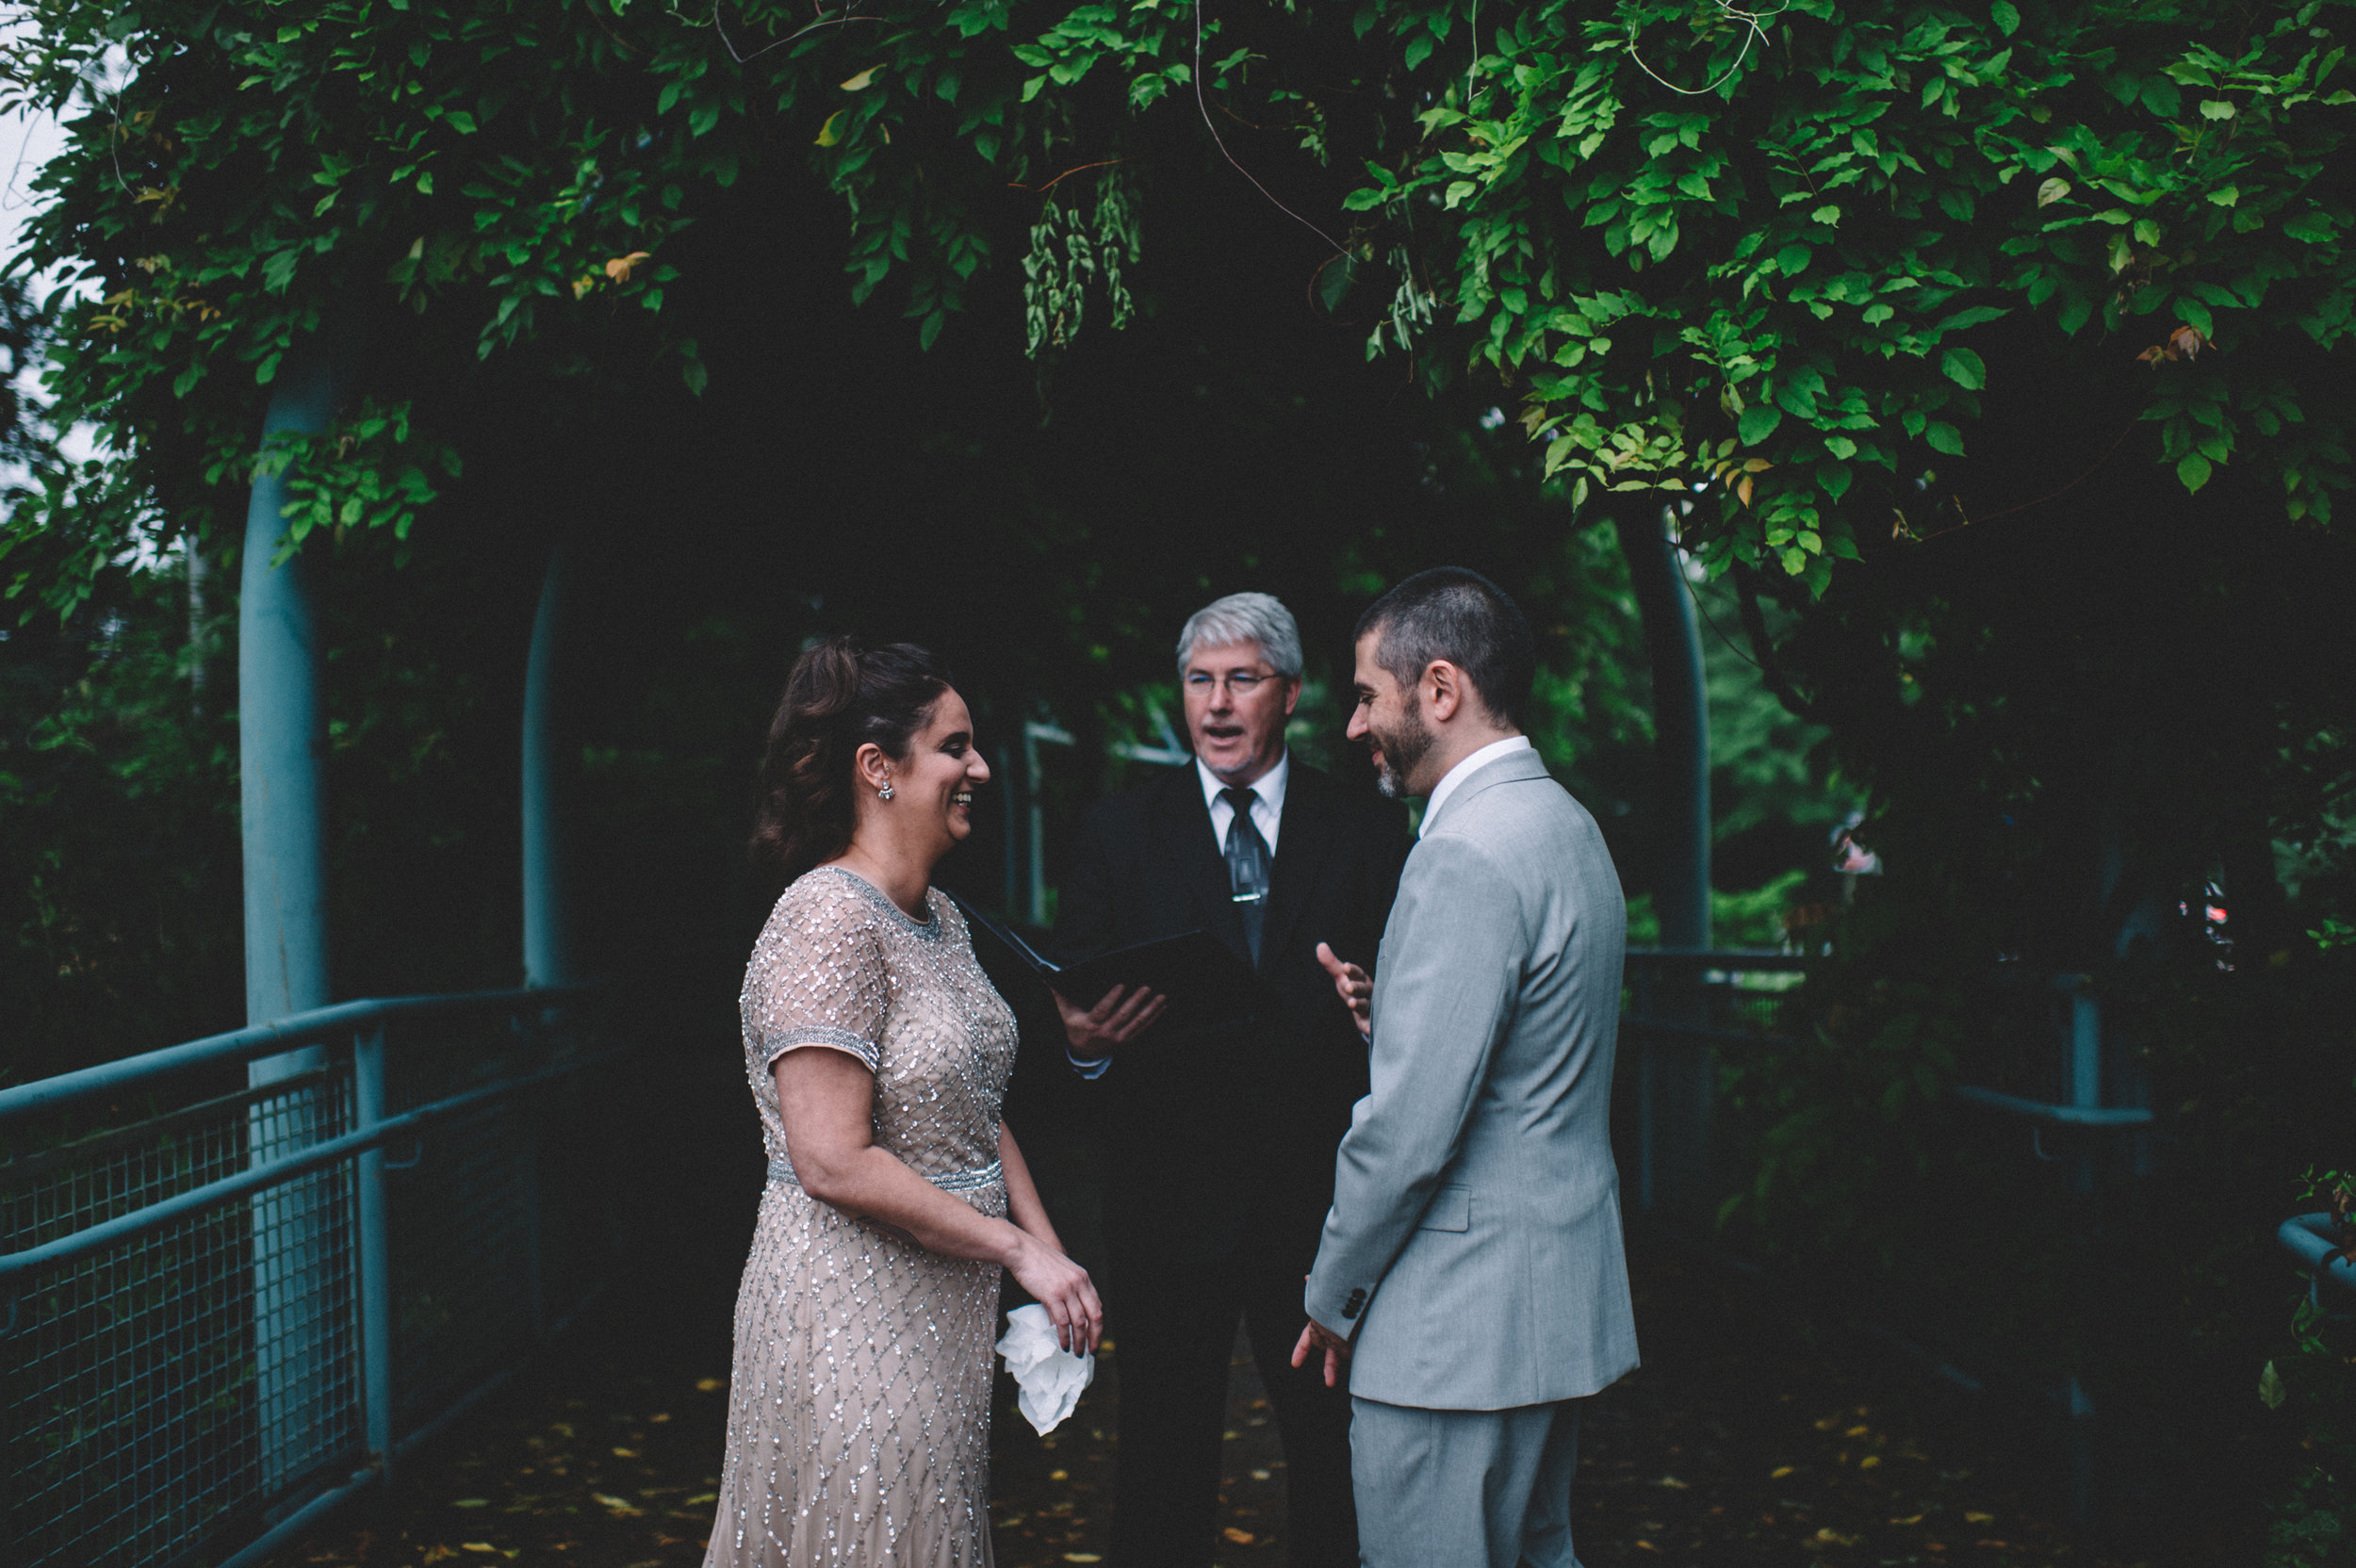 Pittsburgh Elopement Photographer - Bevilacqua-198.jpg